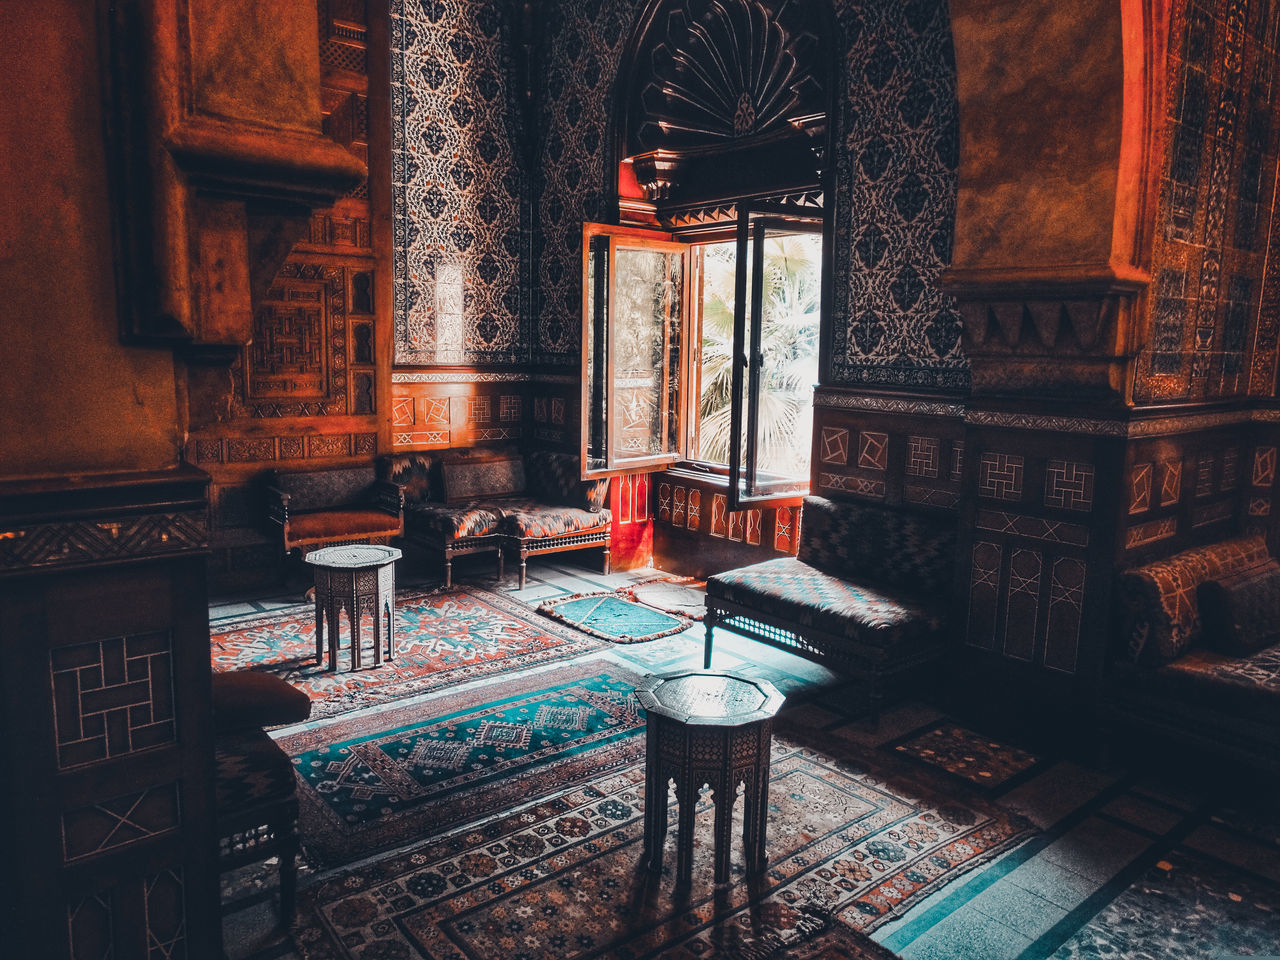 Wooden tables and chairs in old palace